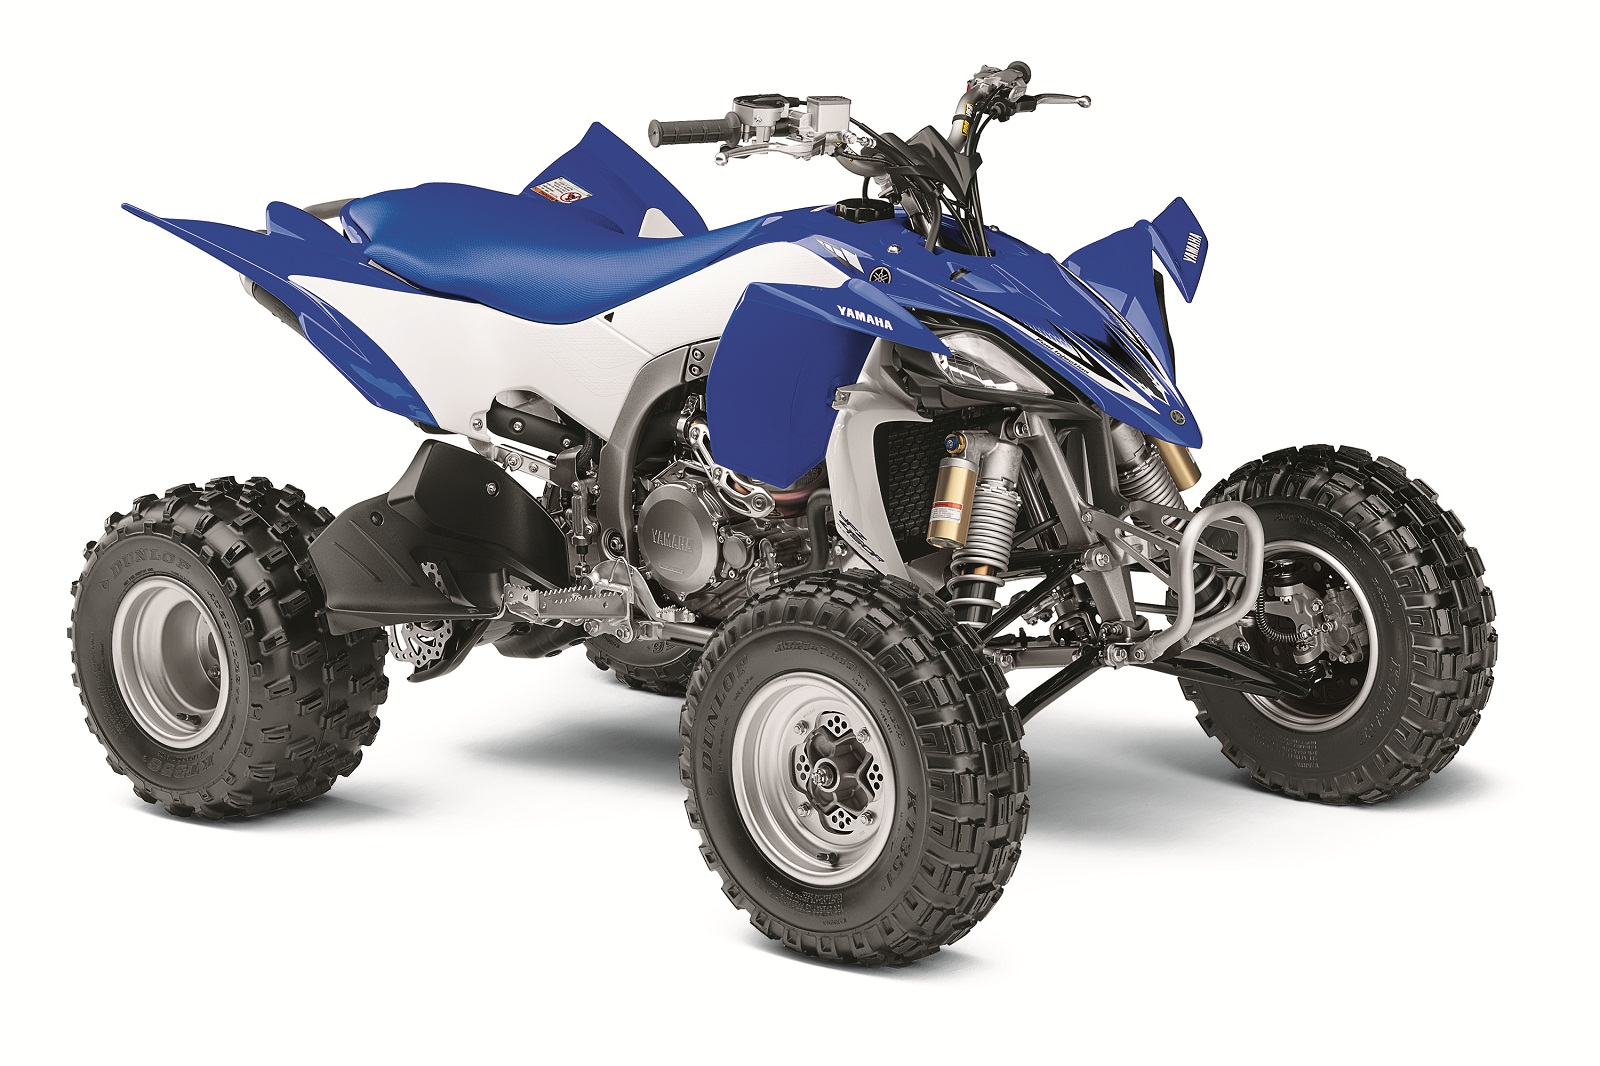 Yamaha 450 Atv >> 2012 Yamaha YFZ 450R Review - Top Speed